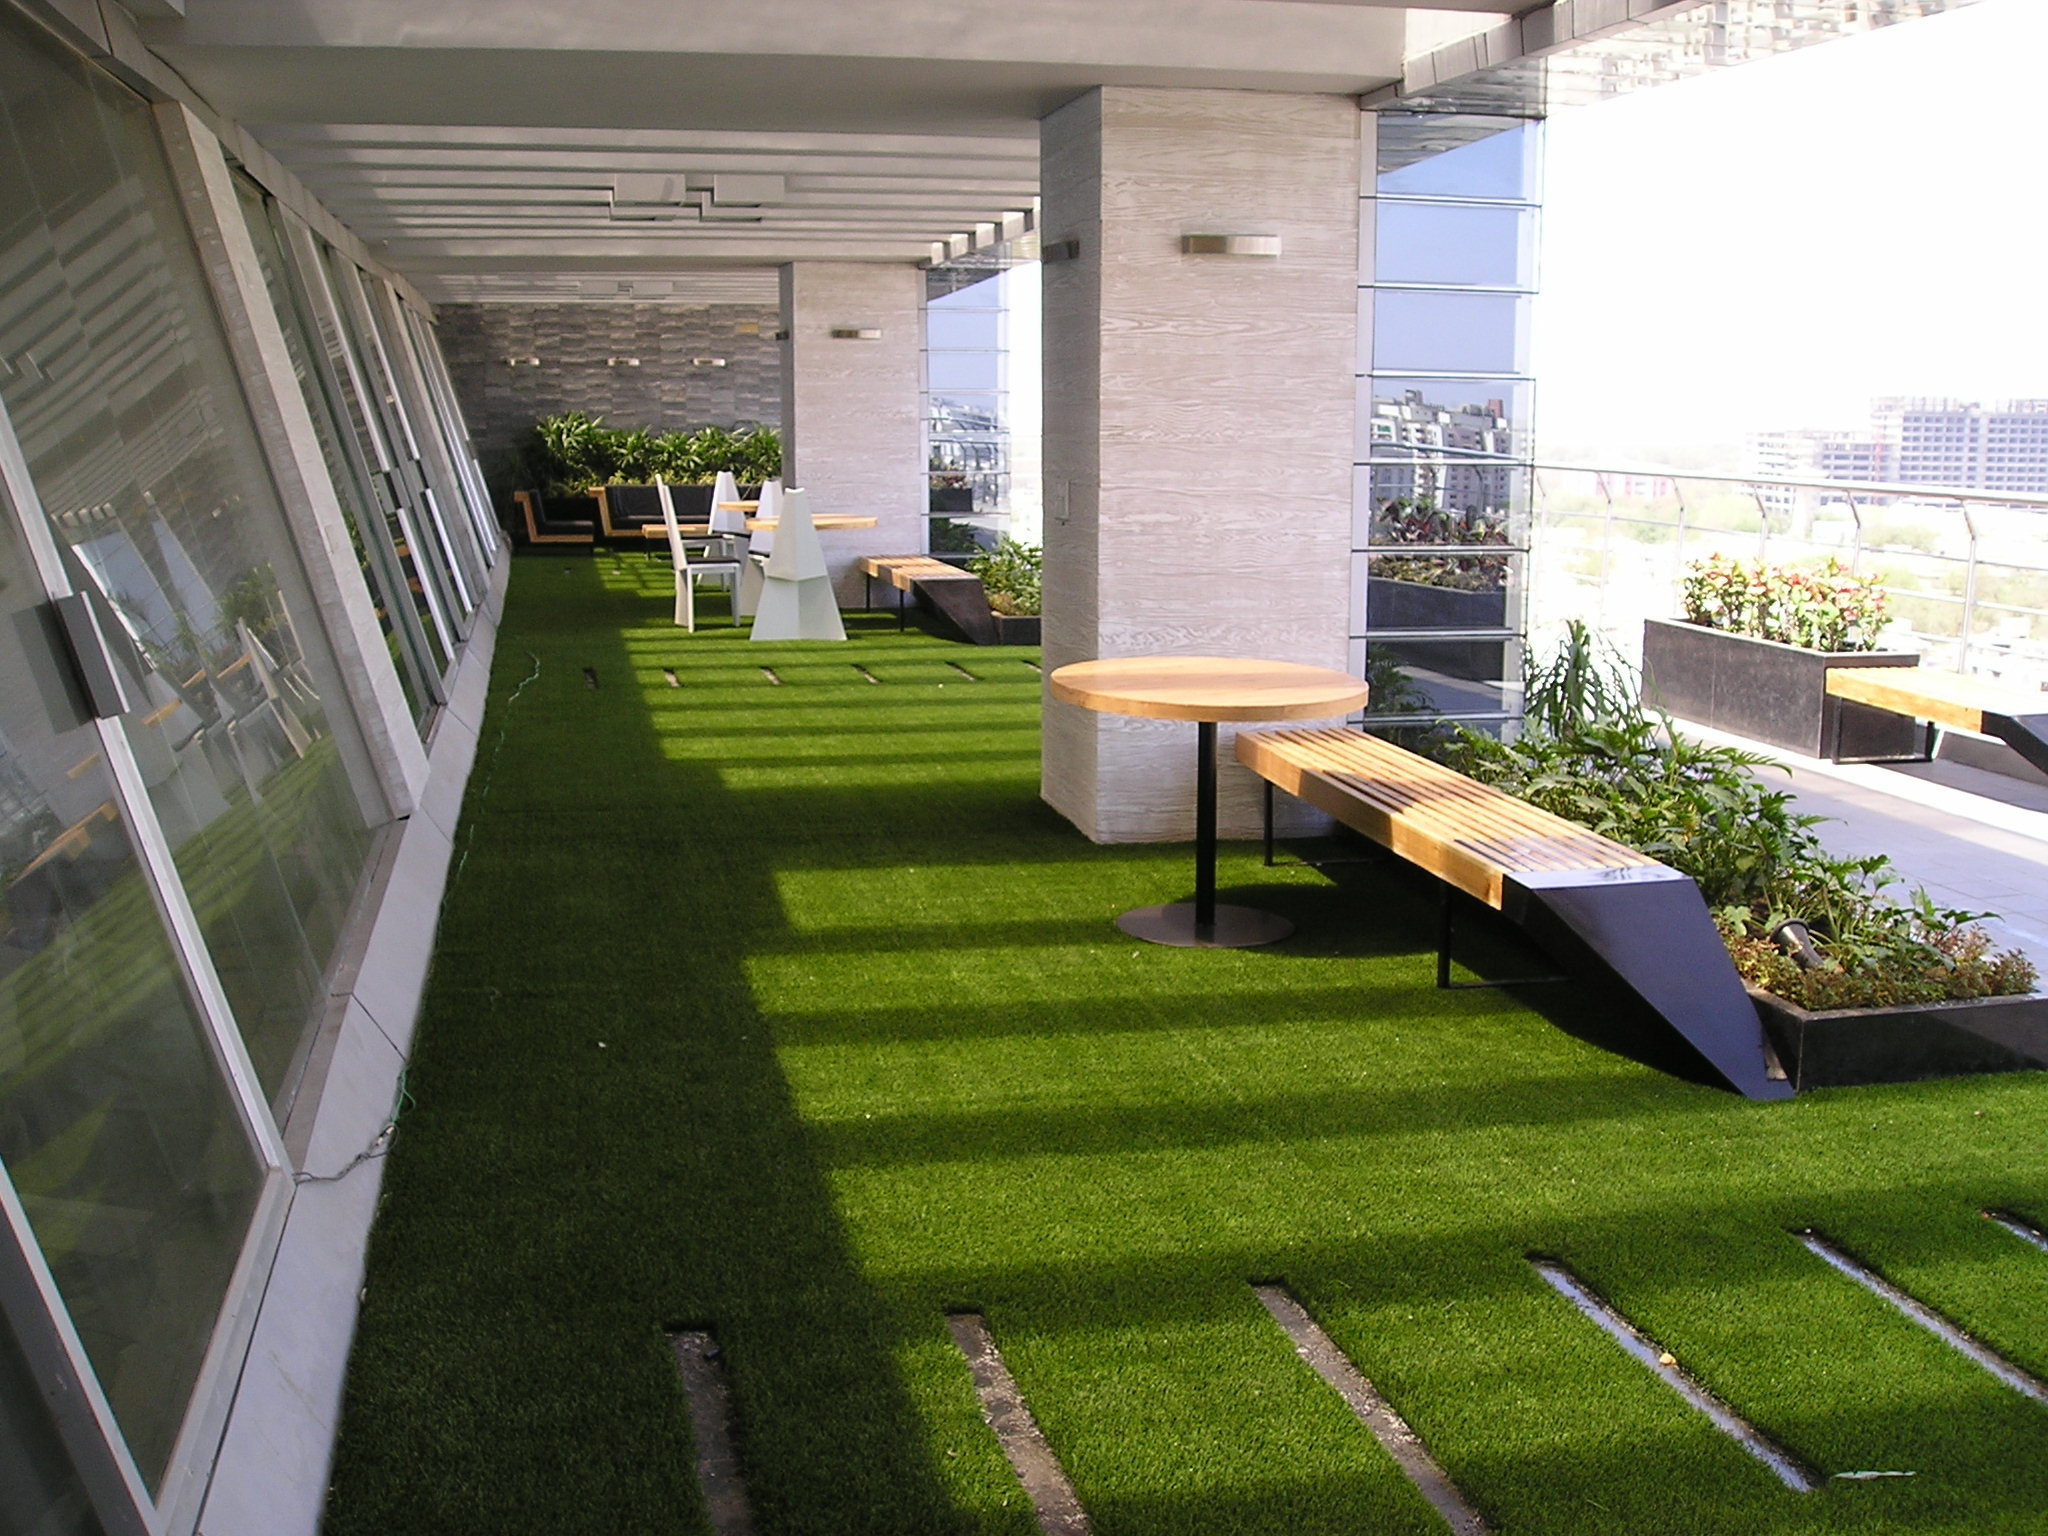 artificial grass interior exterior solutionsinterior exterior solutions. Black Bedroom Furniture Sets. Home Design Ideas